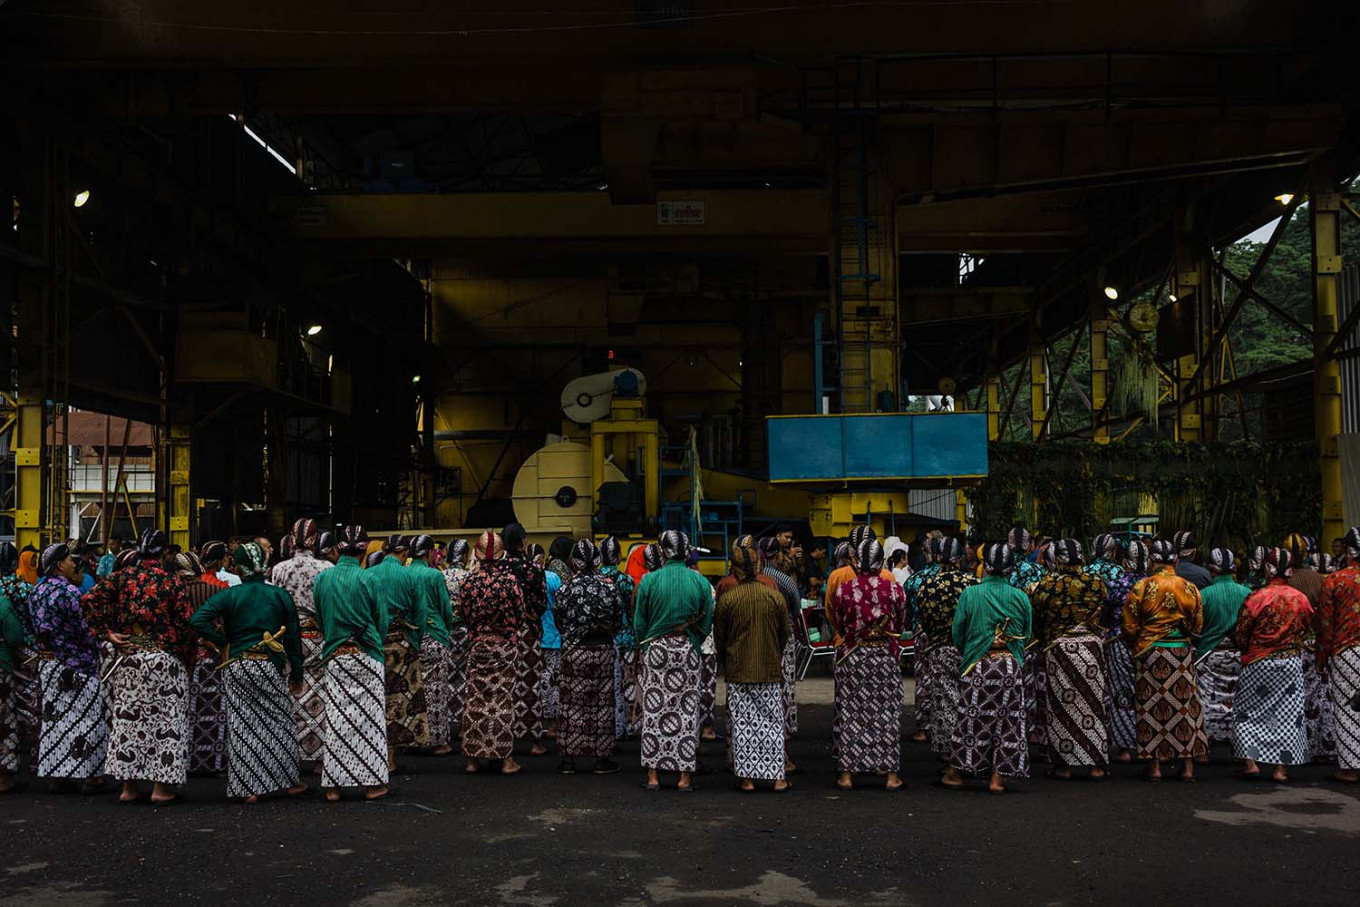 Employees of the Madukismo Sugar Factory dress in traditional Javanese attire and stand in front of the milling station. JP/Anggertimur Lanang Tinarbuko